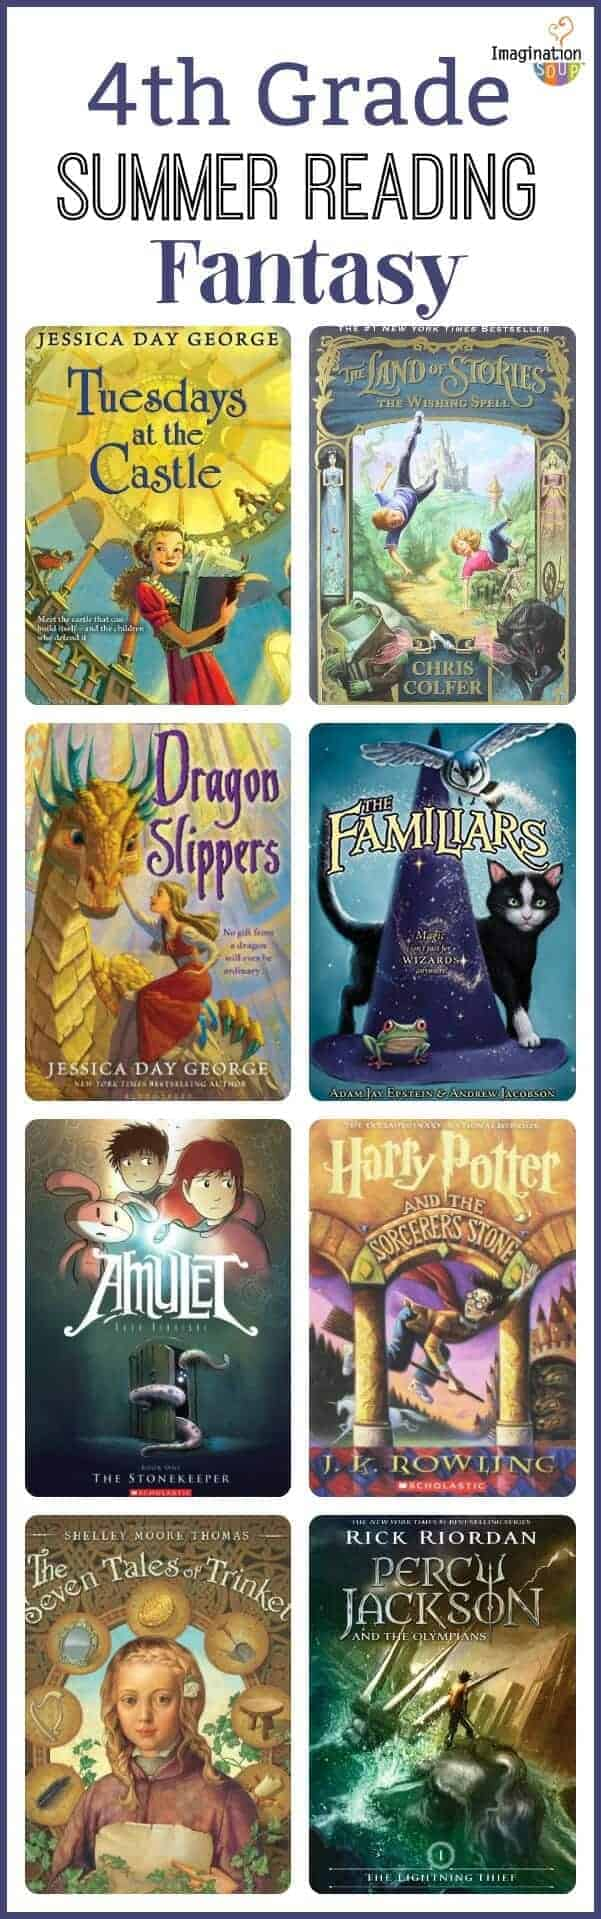 4th grade summer reading list for kids ages 9 - 10